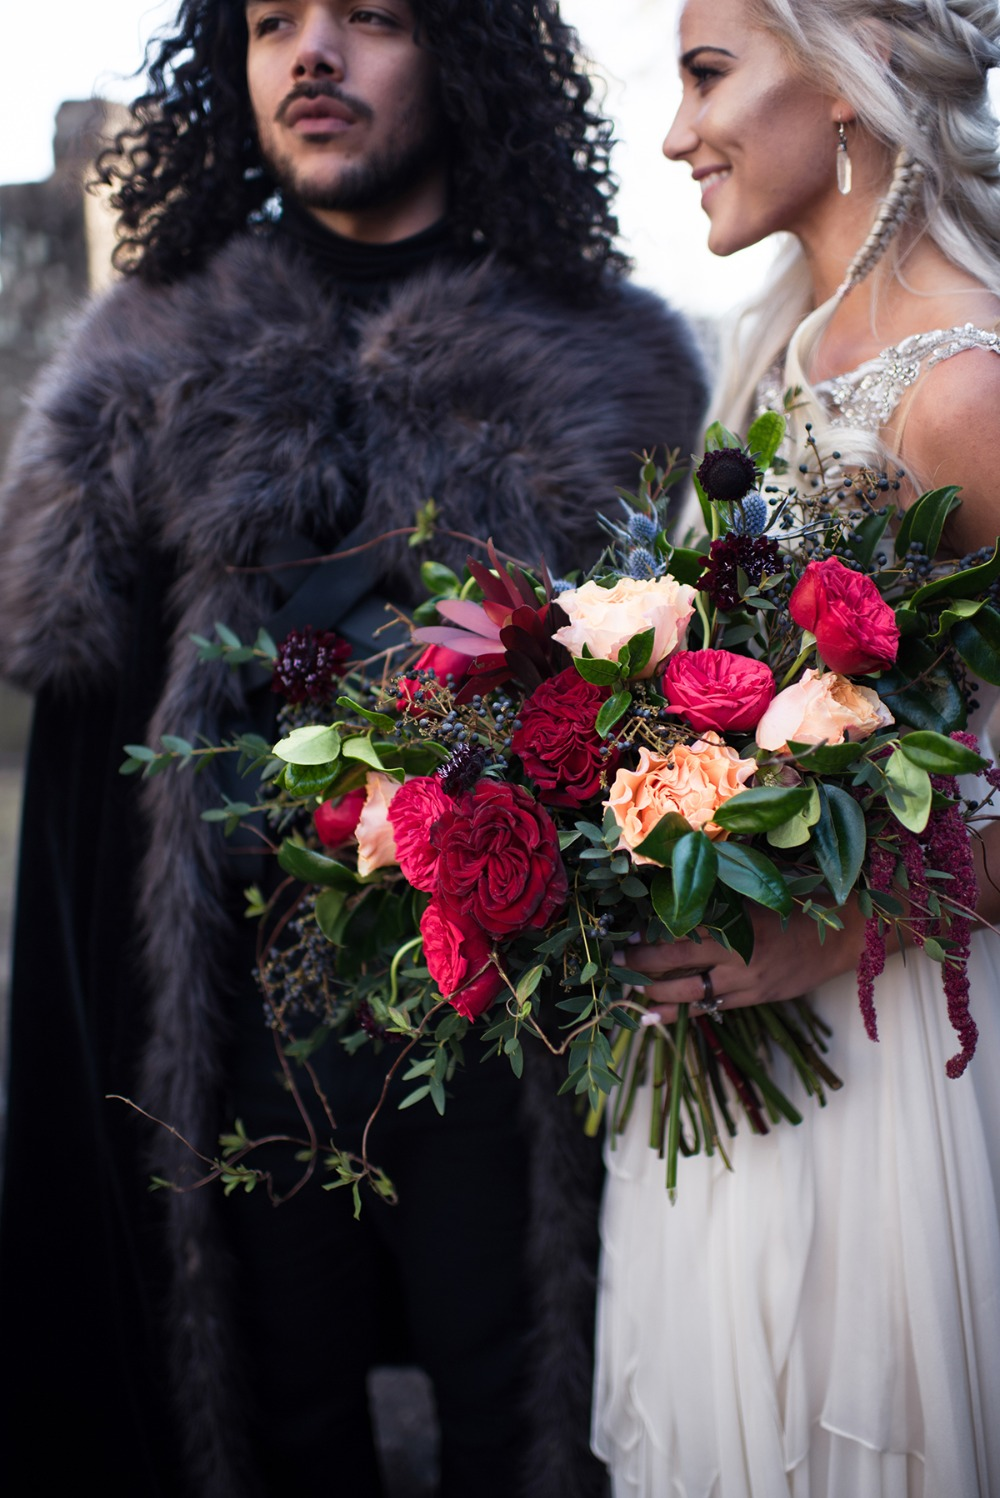 Fire And Ice Game Of Thrones Wedding Ideas